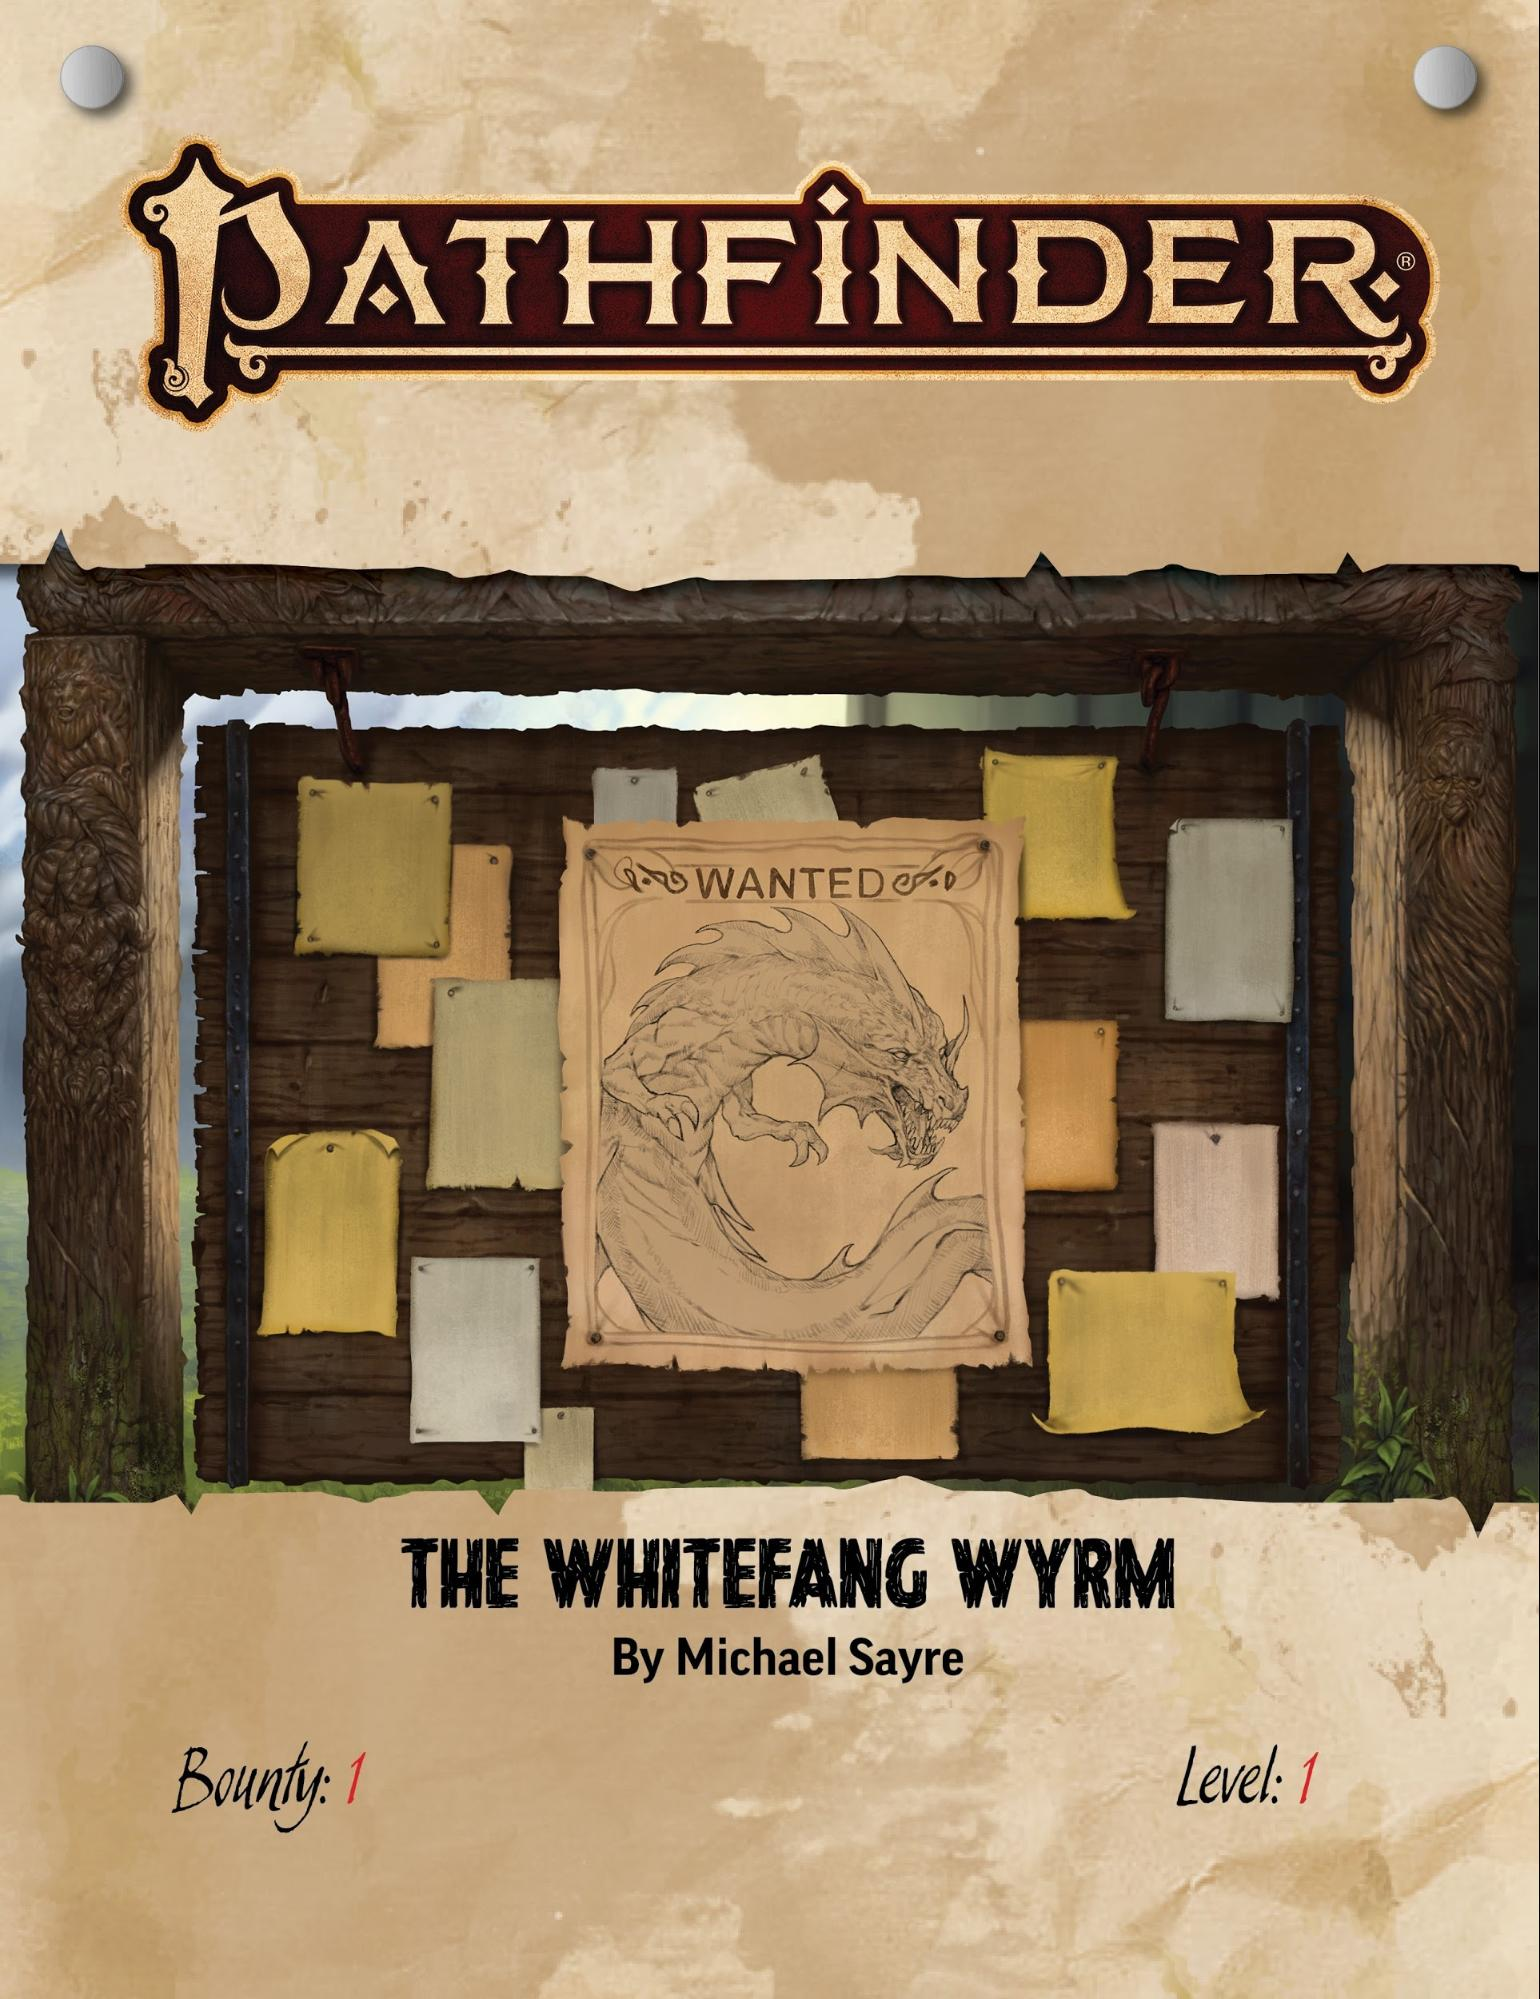 Pathfinder Bounty Witch's Winter Holiday: A wanted board with a poster of a whitefang wyrm